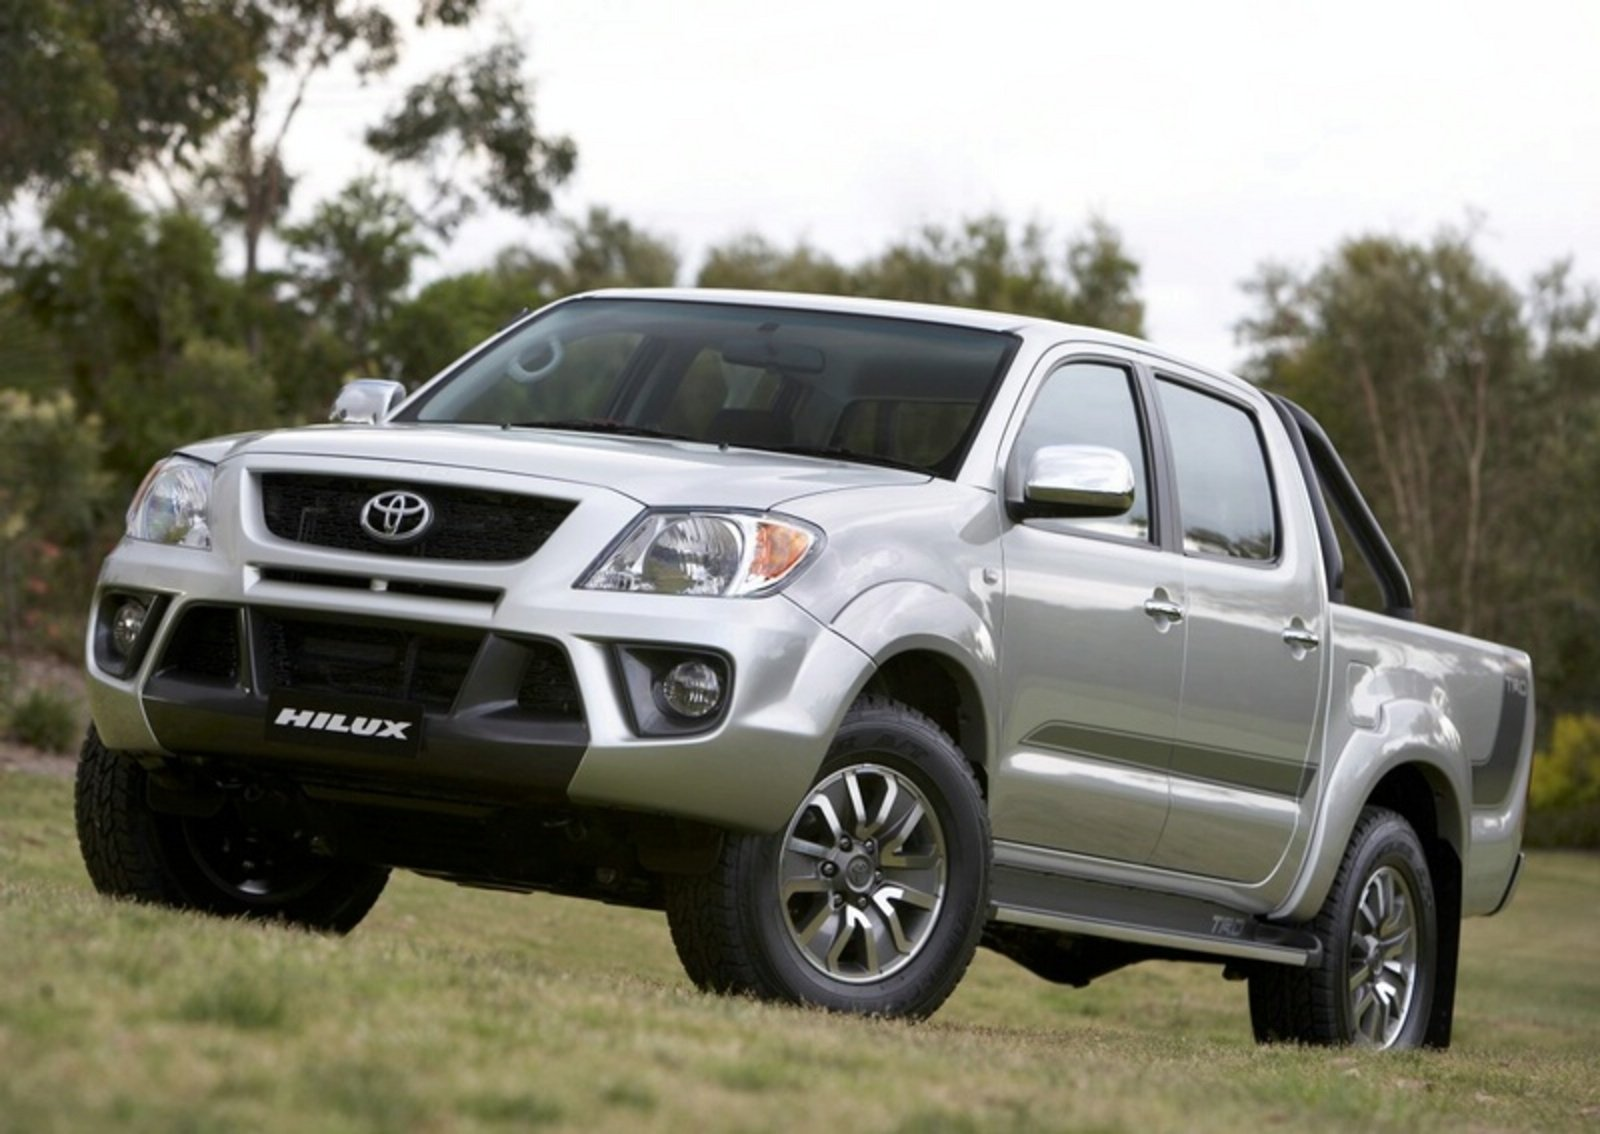 toyota hilux reviews specs prices photos and videos top speed rh topspeed com 2008 Toyota Hilux 2008 Toyota Hilux